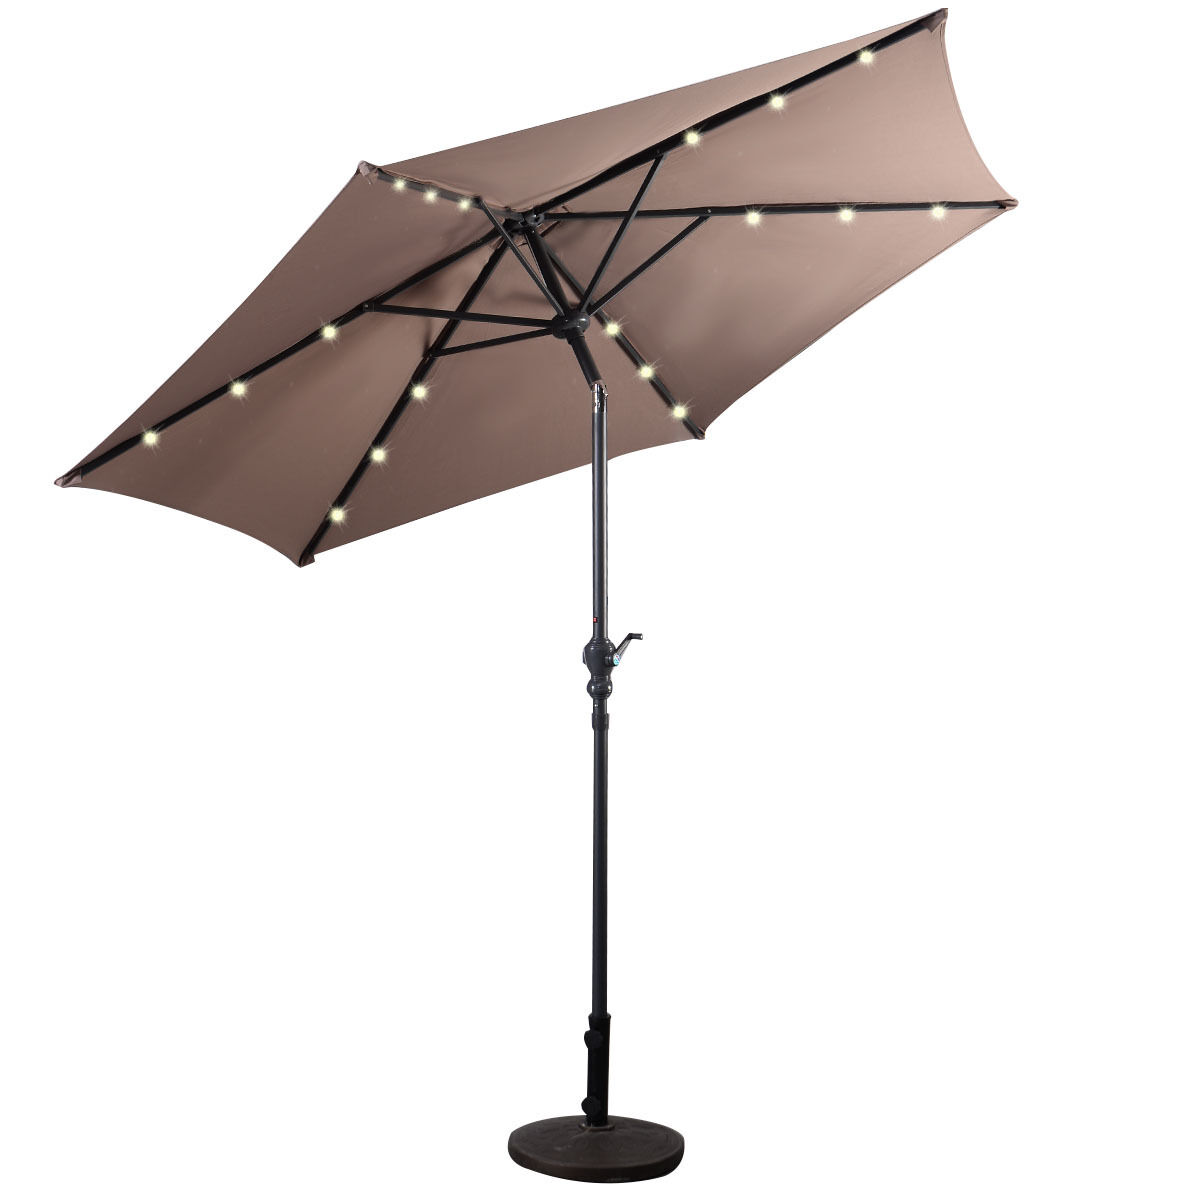 9FT-Patio-Solar-Umbrella-LED-Patio-Market-Steel-Tilt-W-Crank-Outdoor-GOPLUS-New thumbnail 33